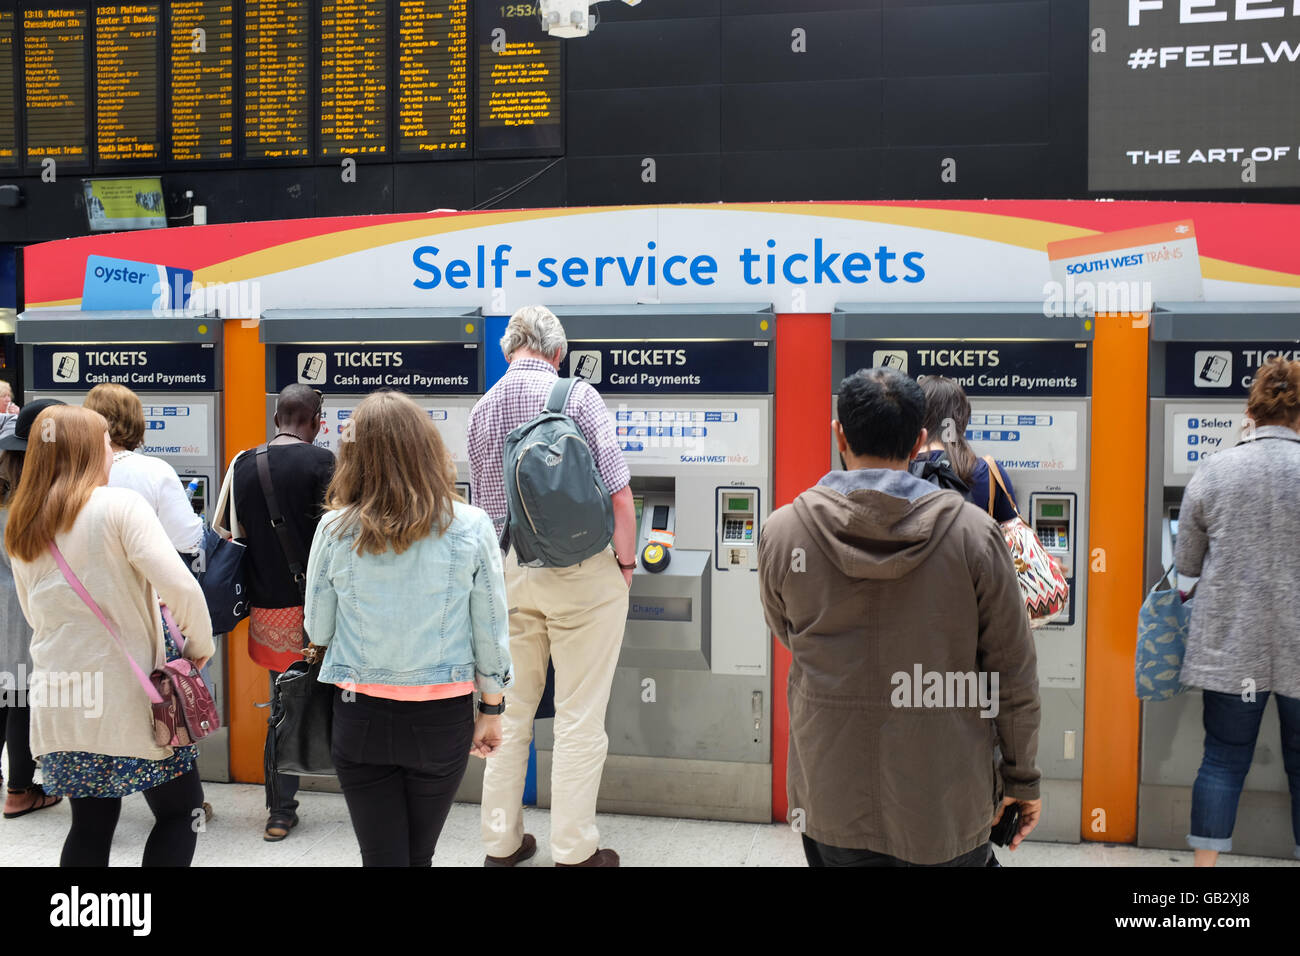 Self-service ticket machines at Waterloo station in London, England. - Stock Image